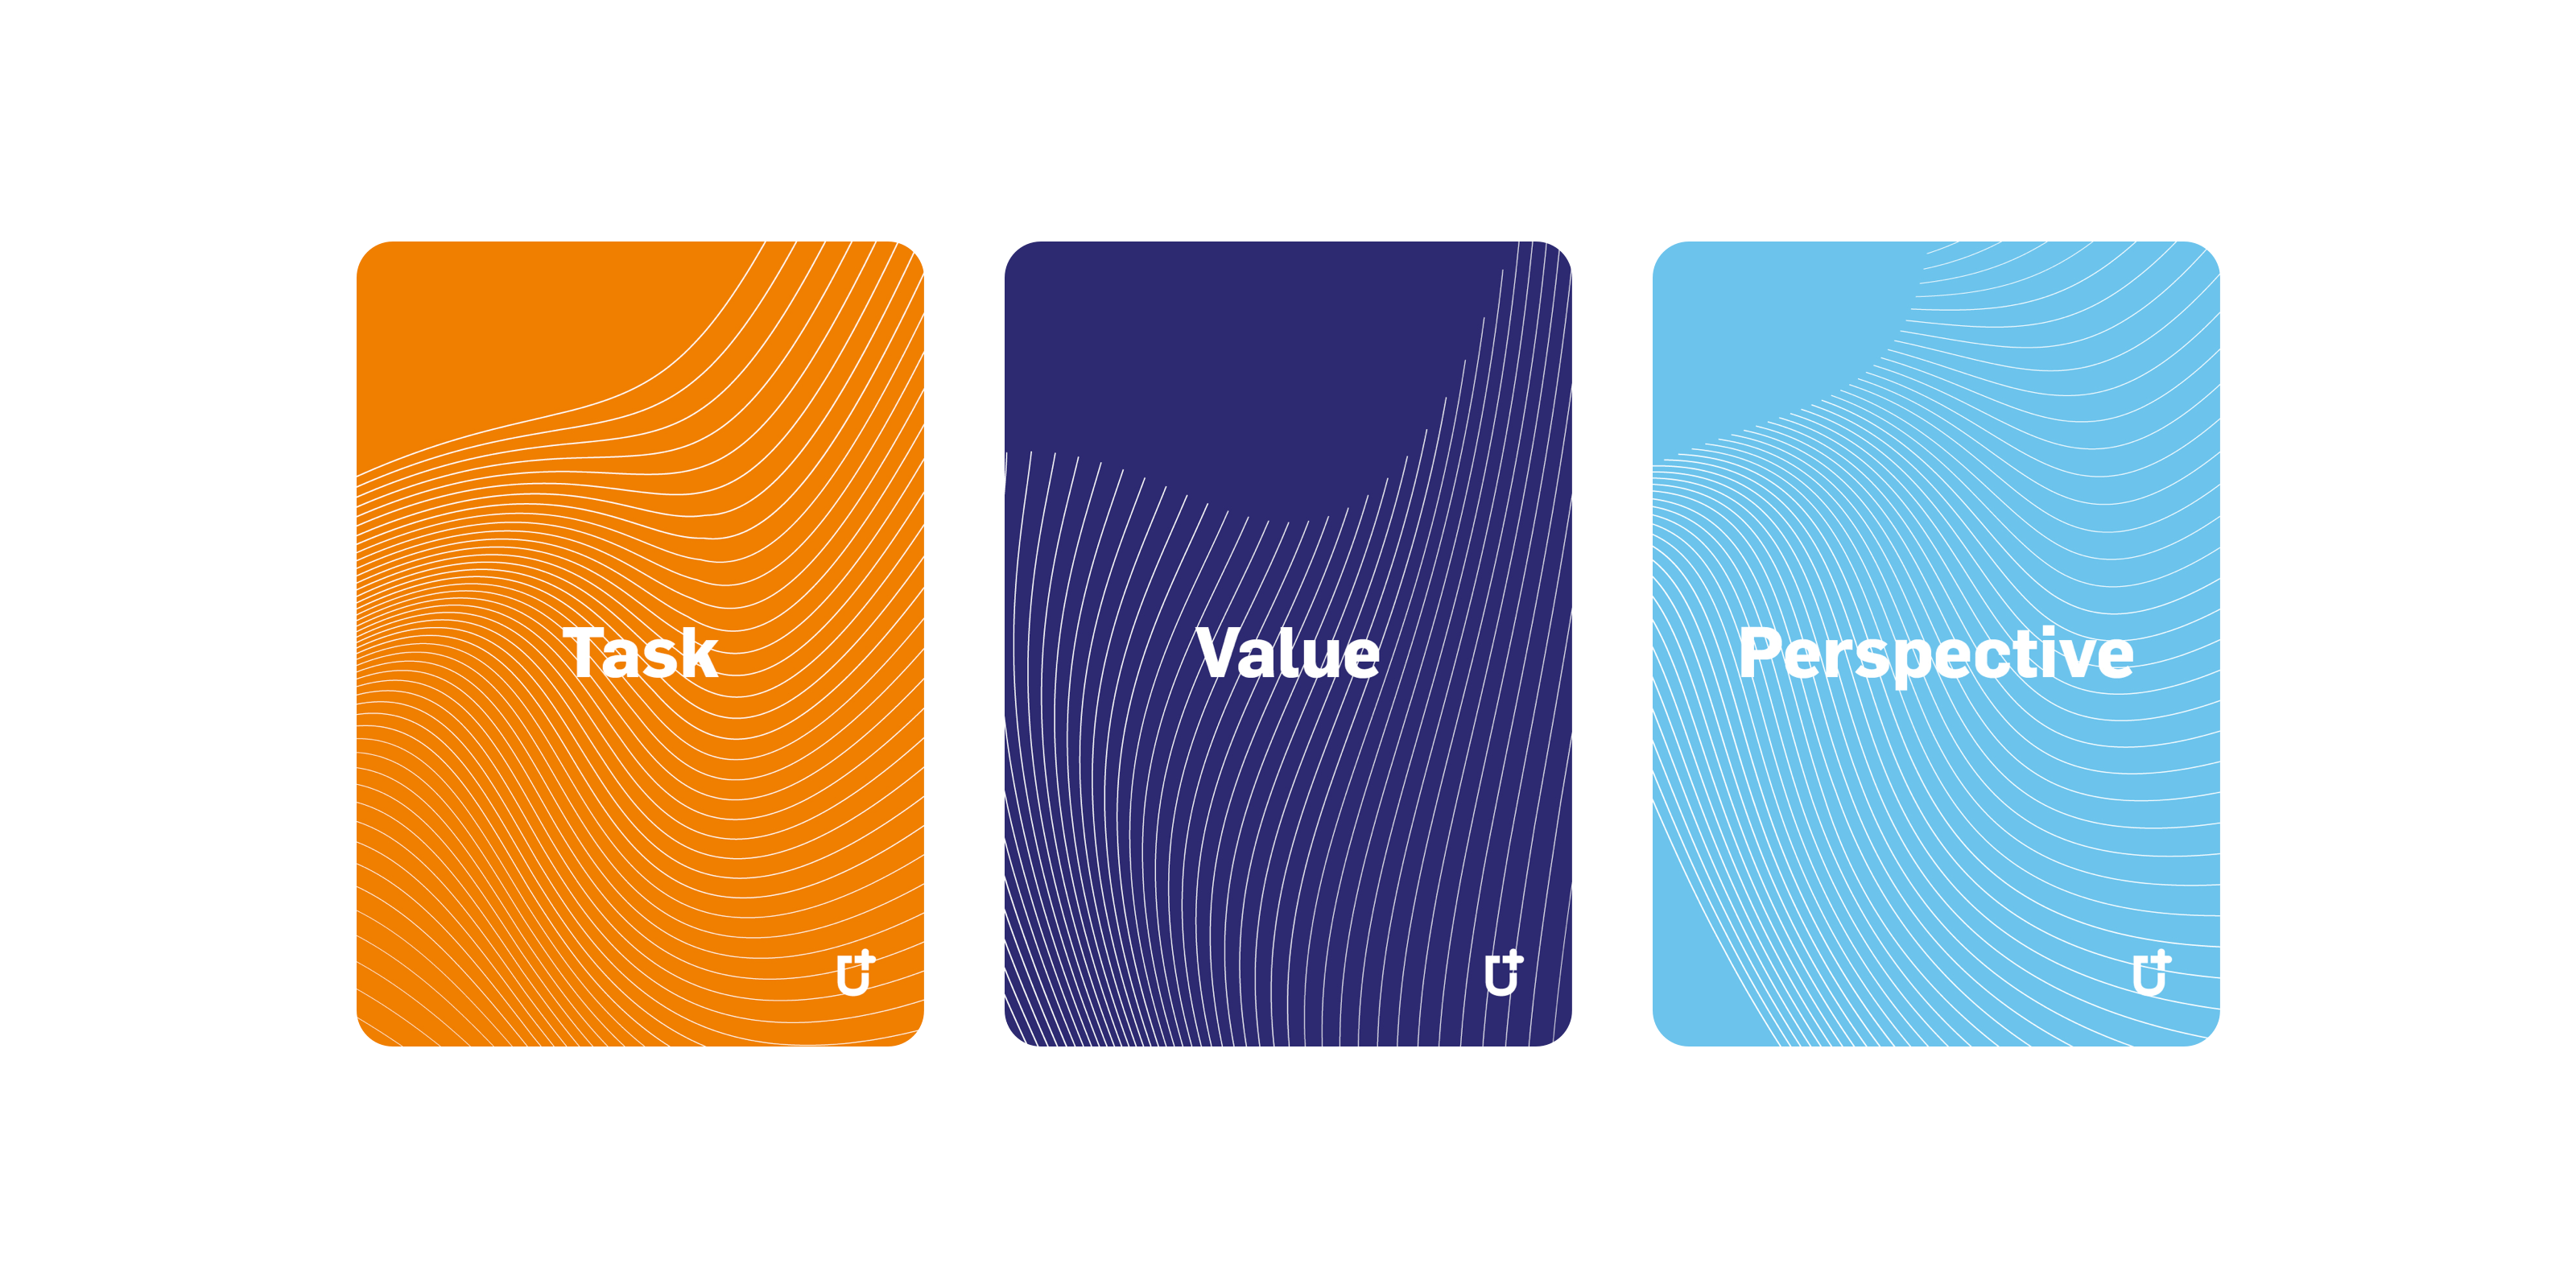 The three types of cards in the game: 'Task', 'Value' & 'Perspective'